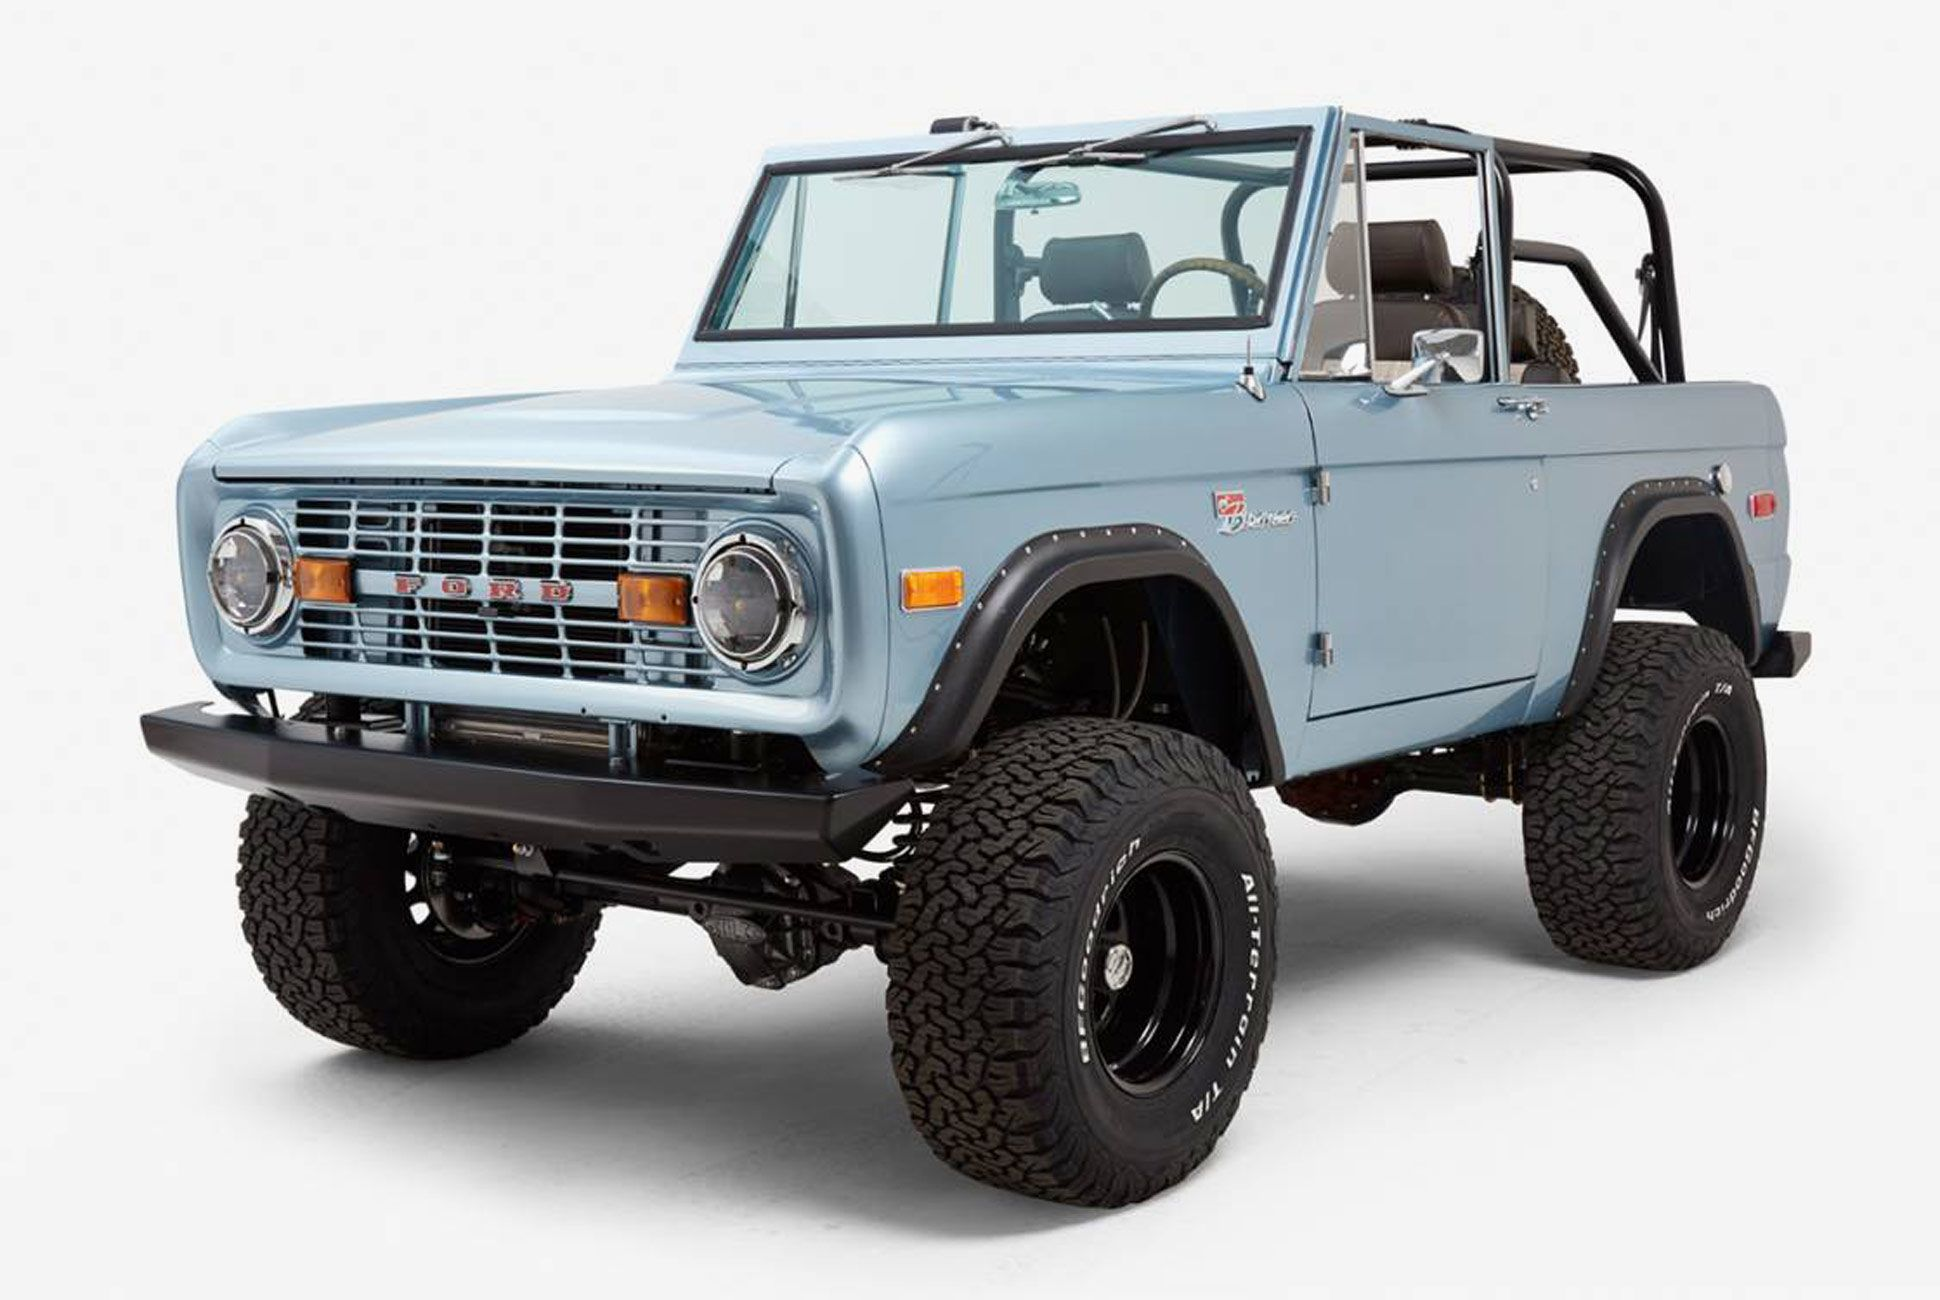 1971 Ford Bronco by Classic Ford Broncos | Ford bronco ...